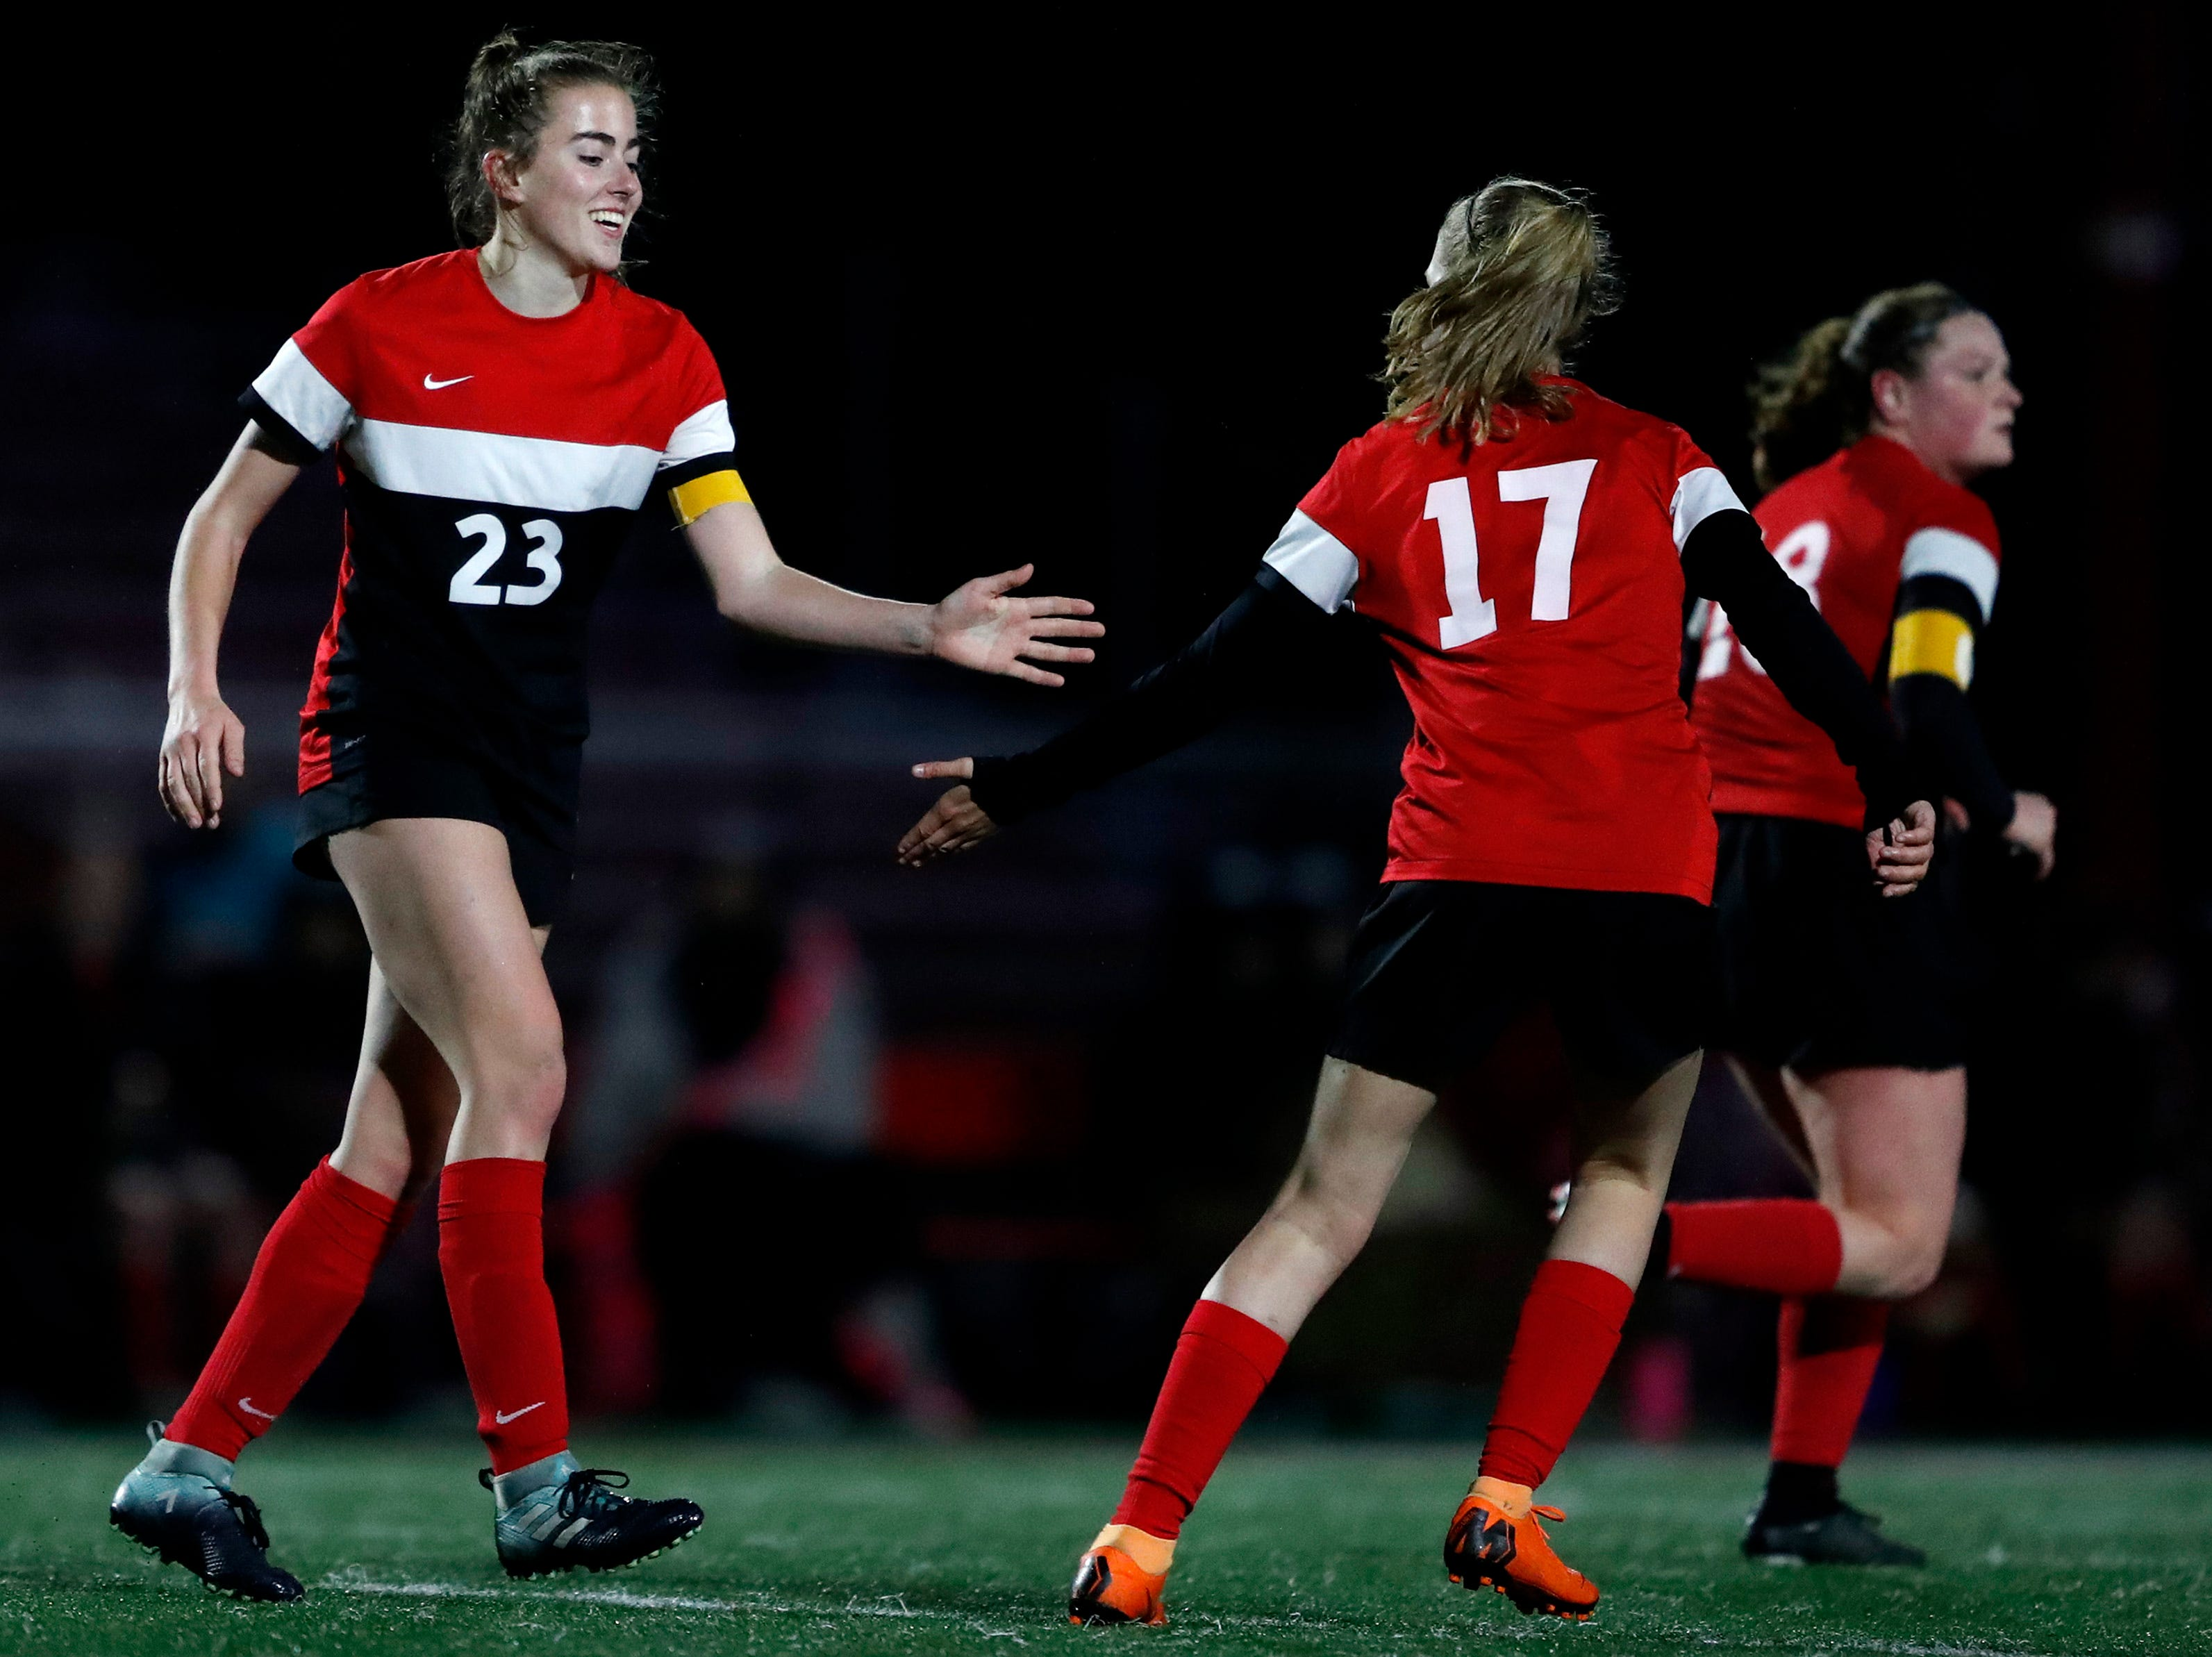 Kimberly High School's Elsi Twombly celebrates with Taylor Ziebell after Twombly scored her second goal of the night against Neenah High School Tuesday, April 30, 2019, in Kimberly, Wis. Kimberly defeated Neenah 3-0.Danny Damiani/USA TODAY NETWORK-Wisconsin